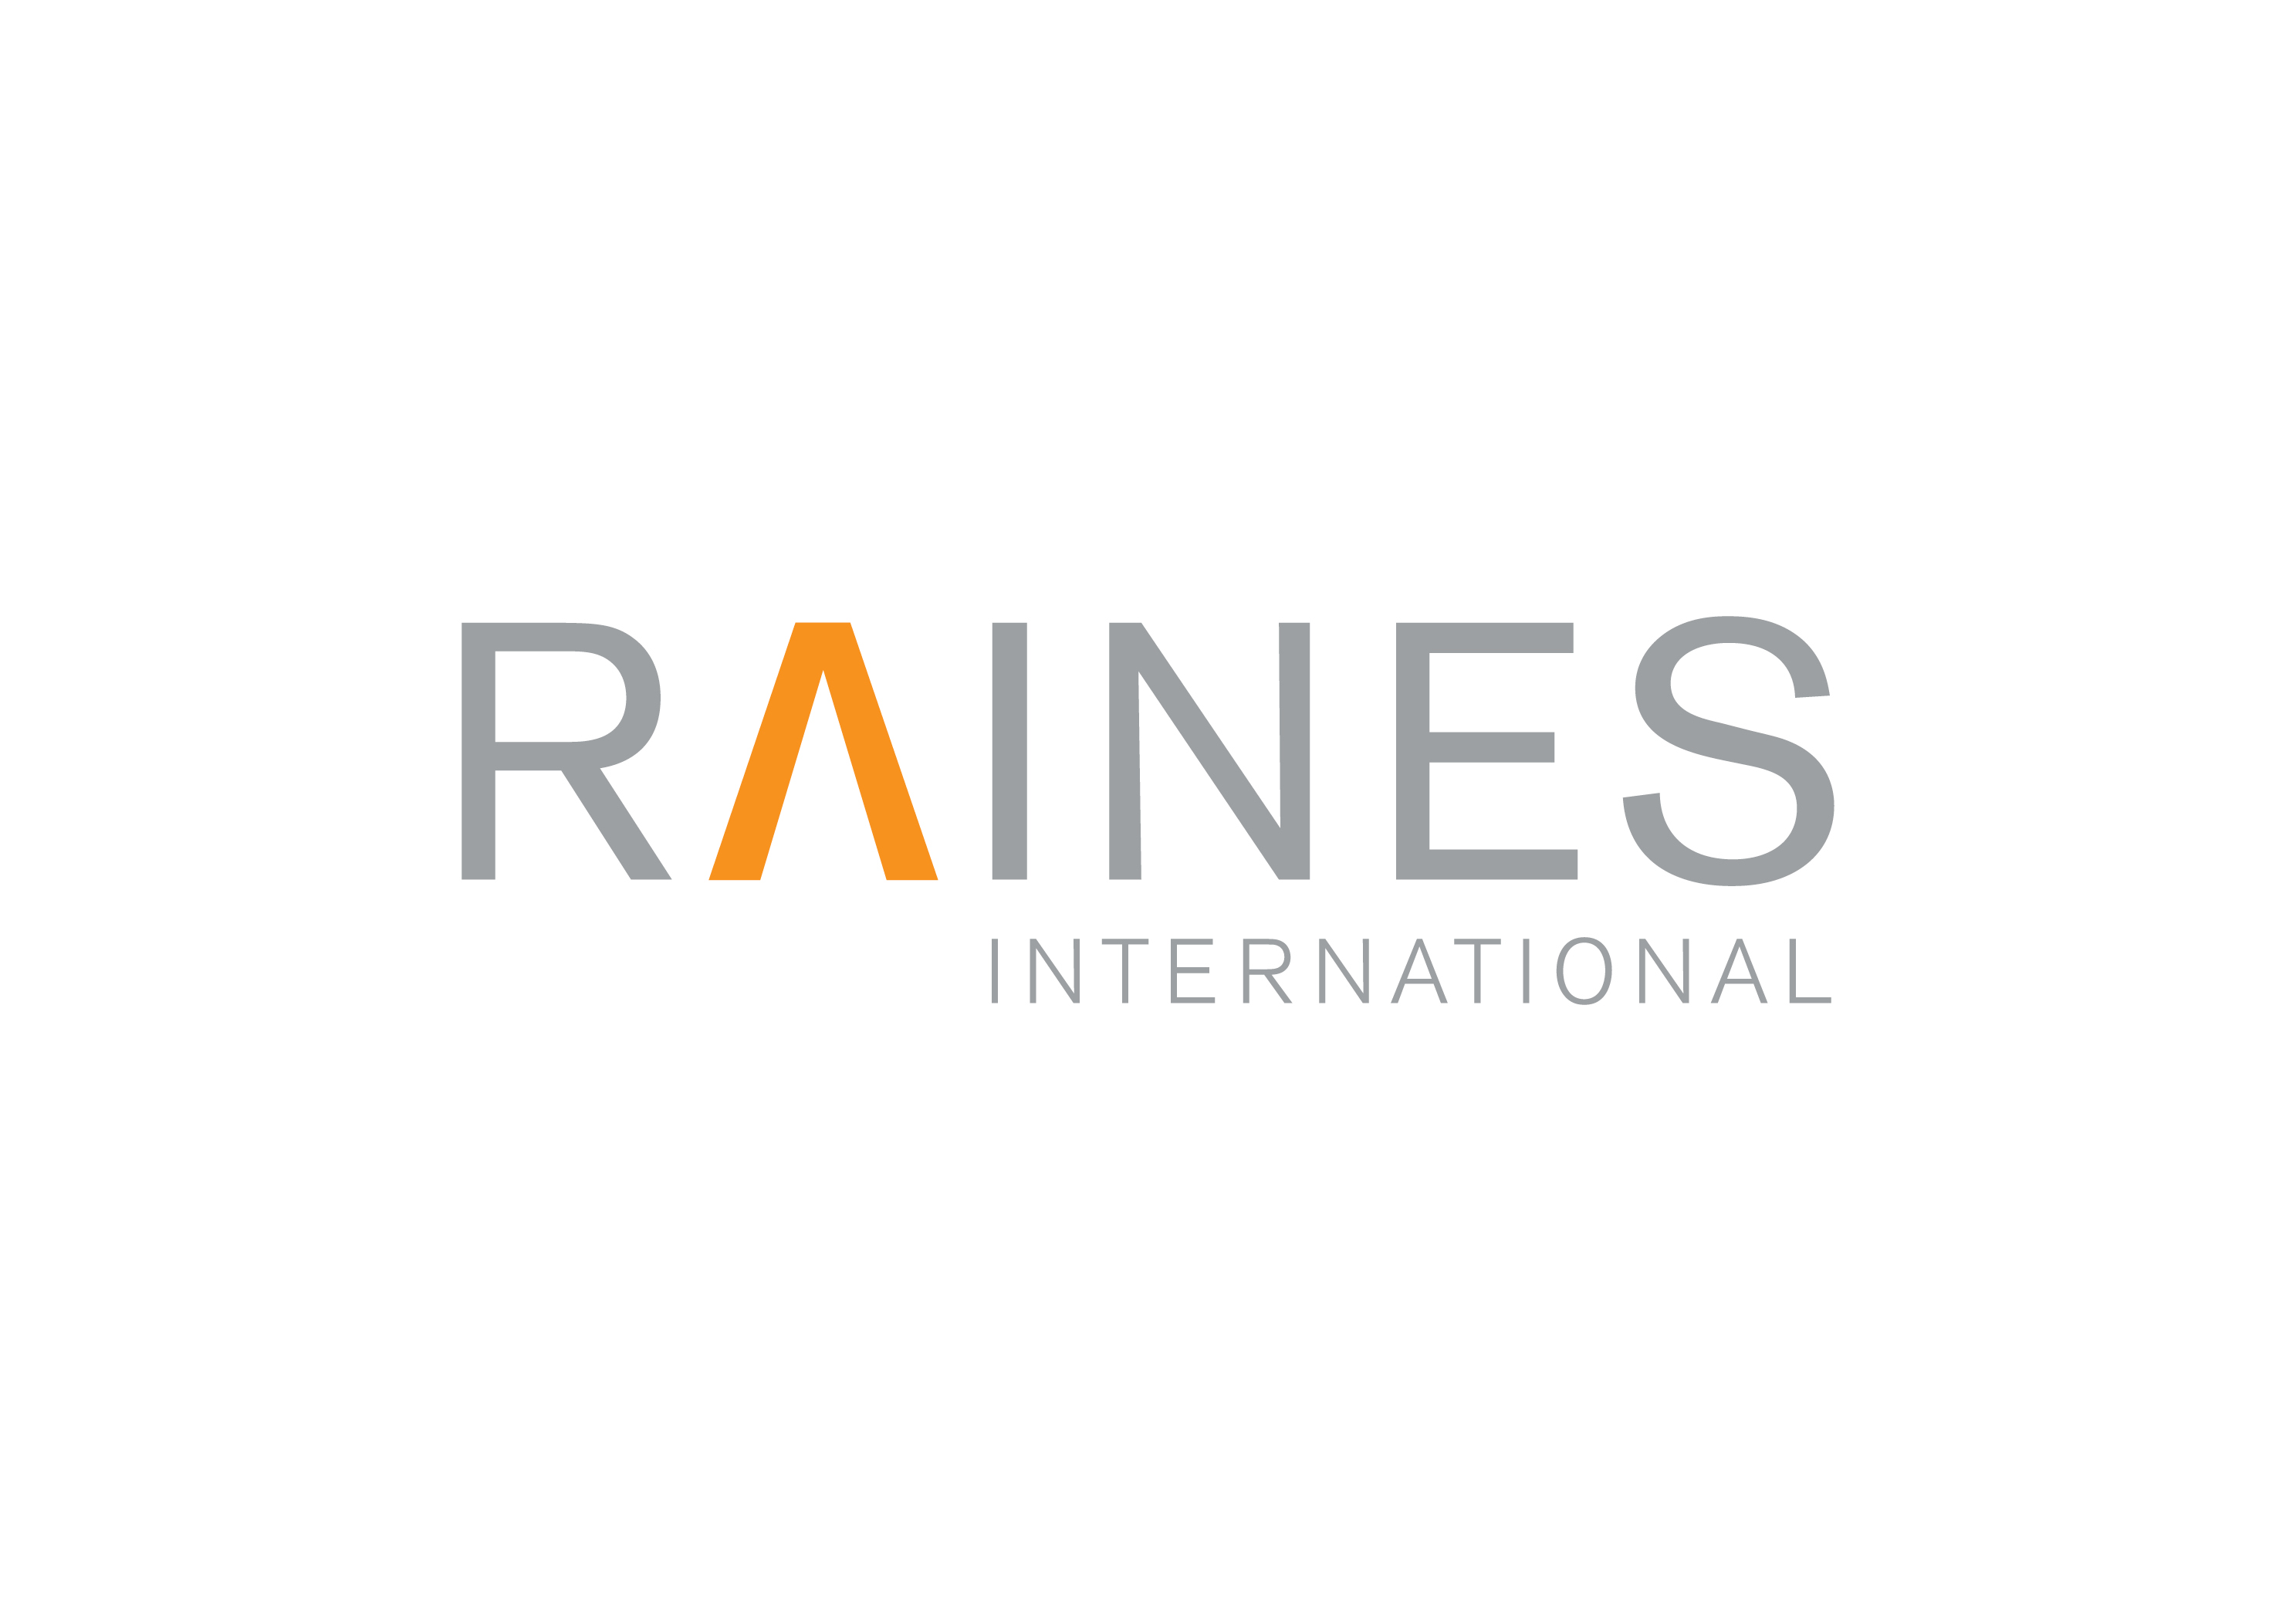 Raines International Brand Identity